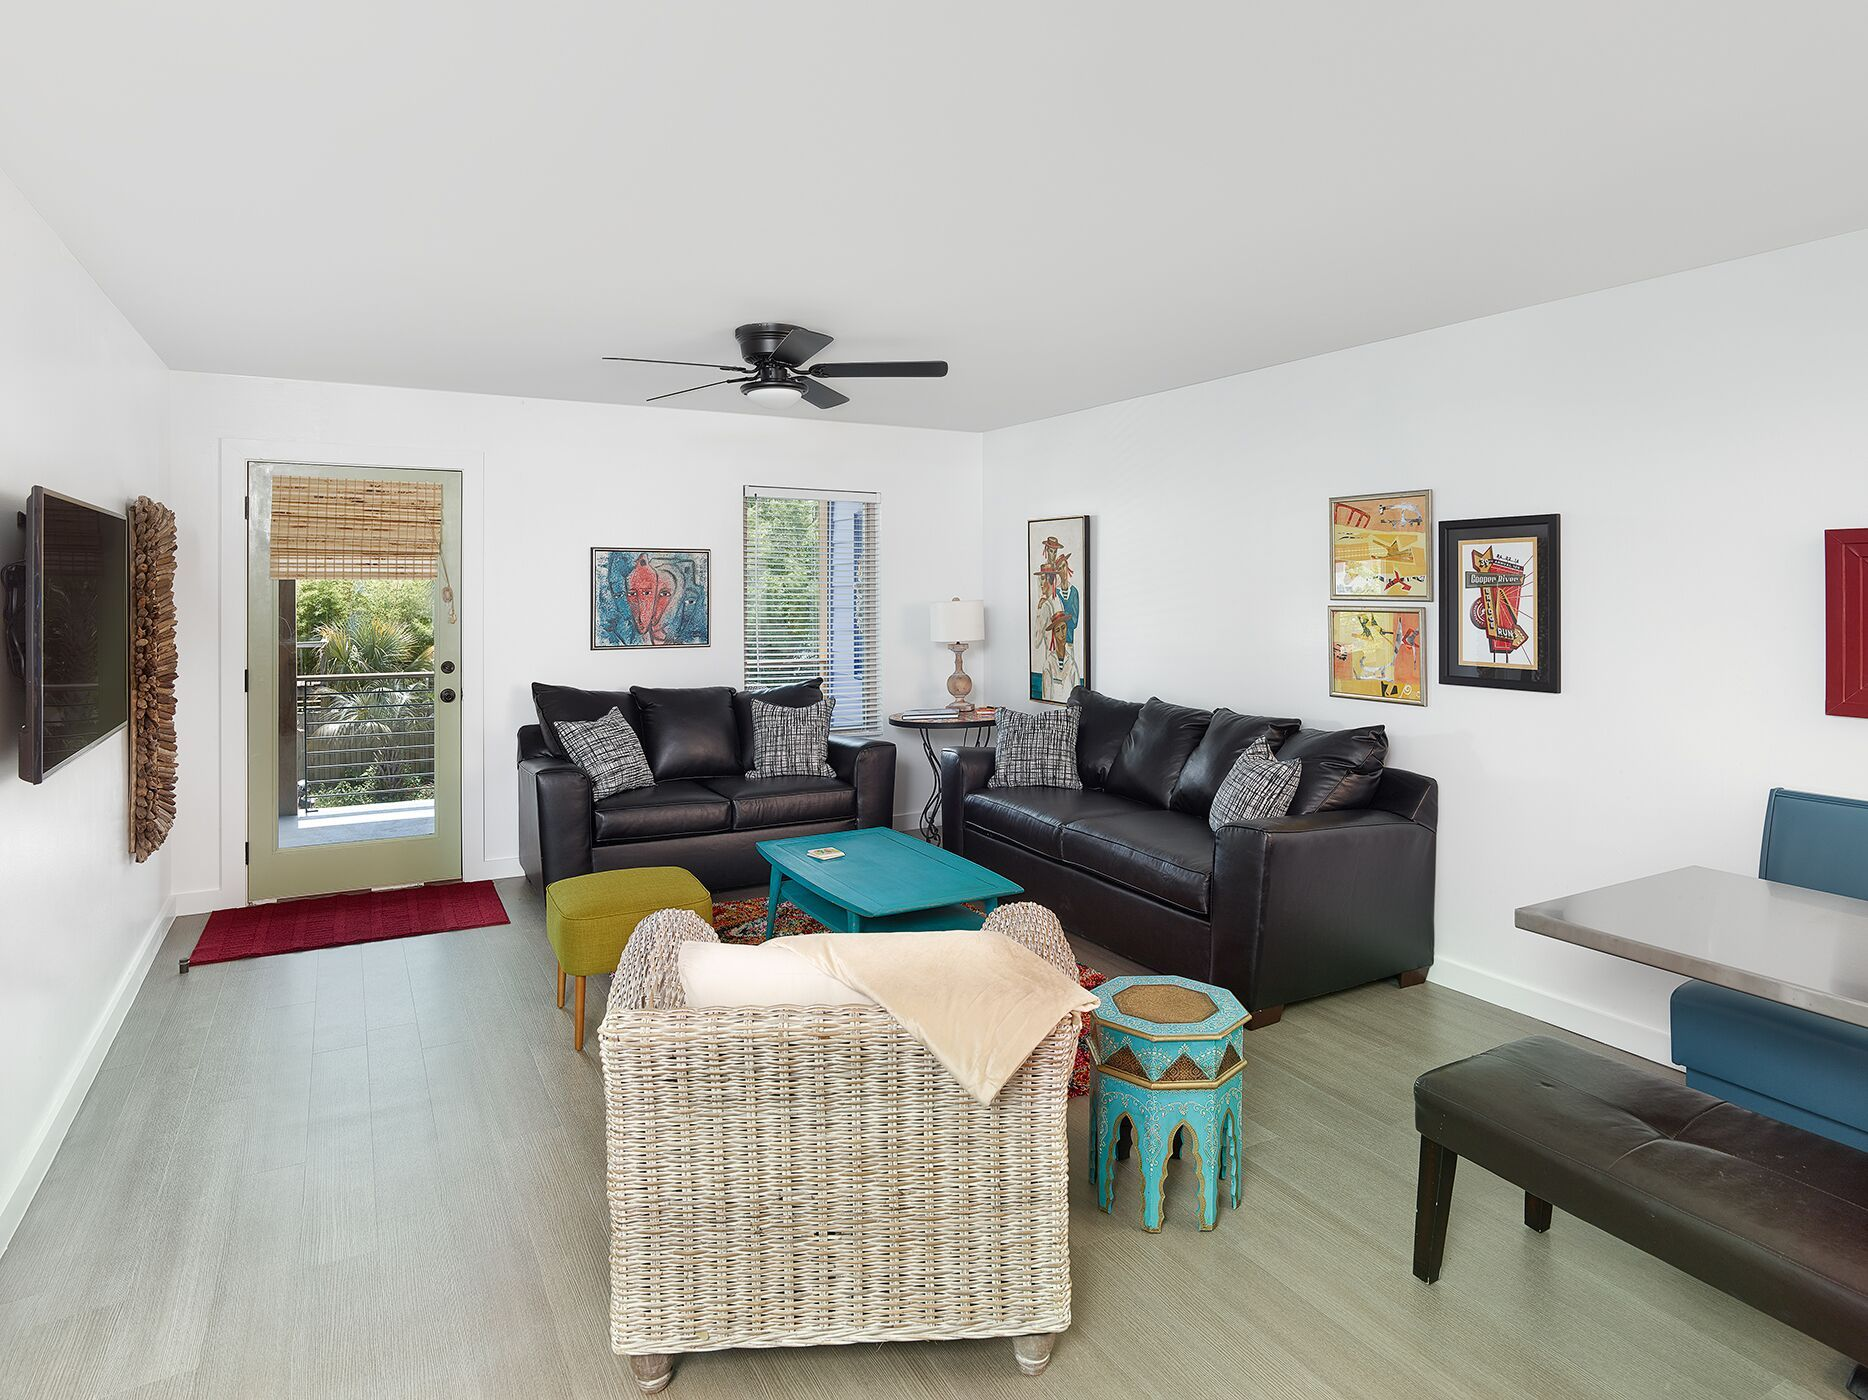 2 bedroom apartment in the heart of Folly Beach, SC